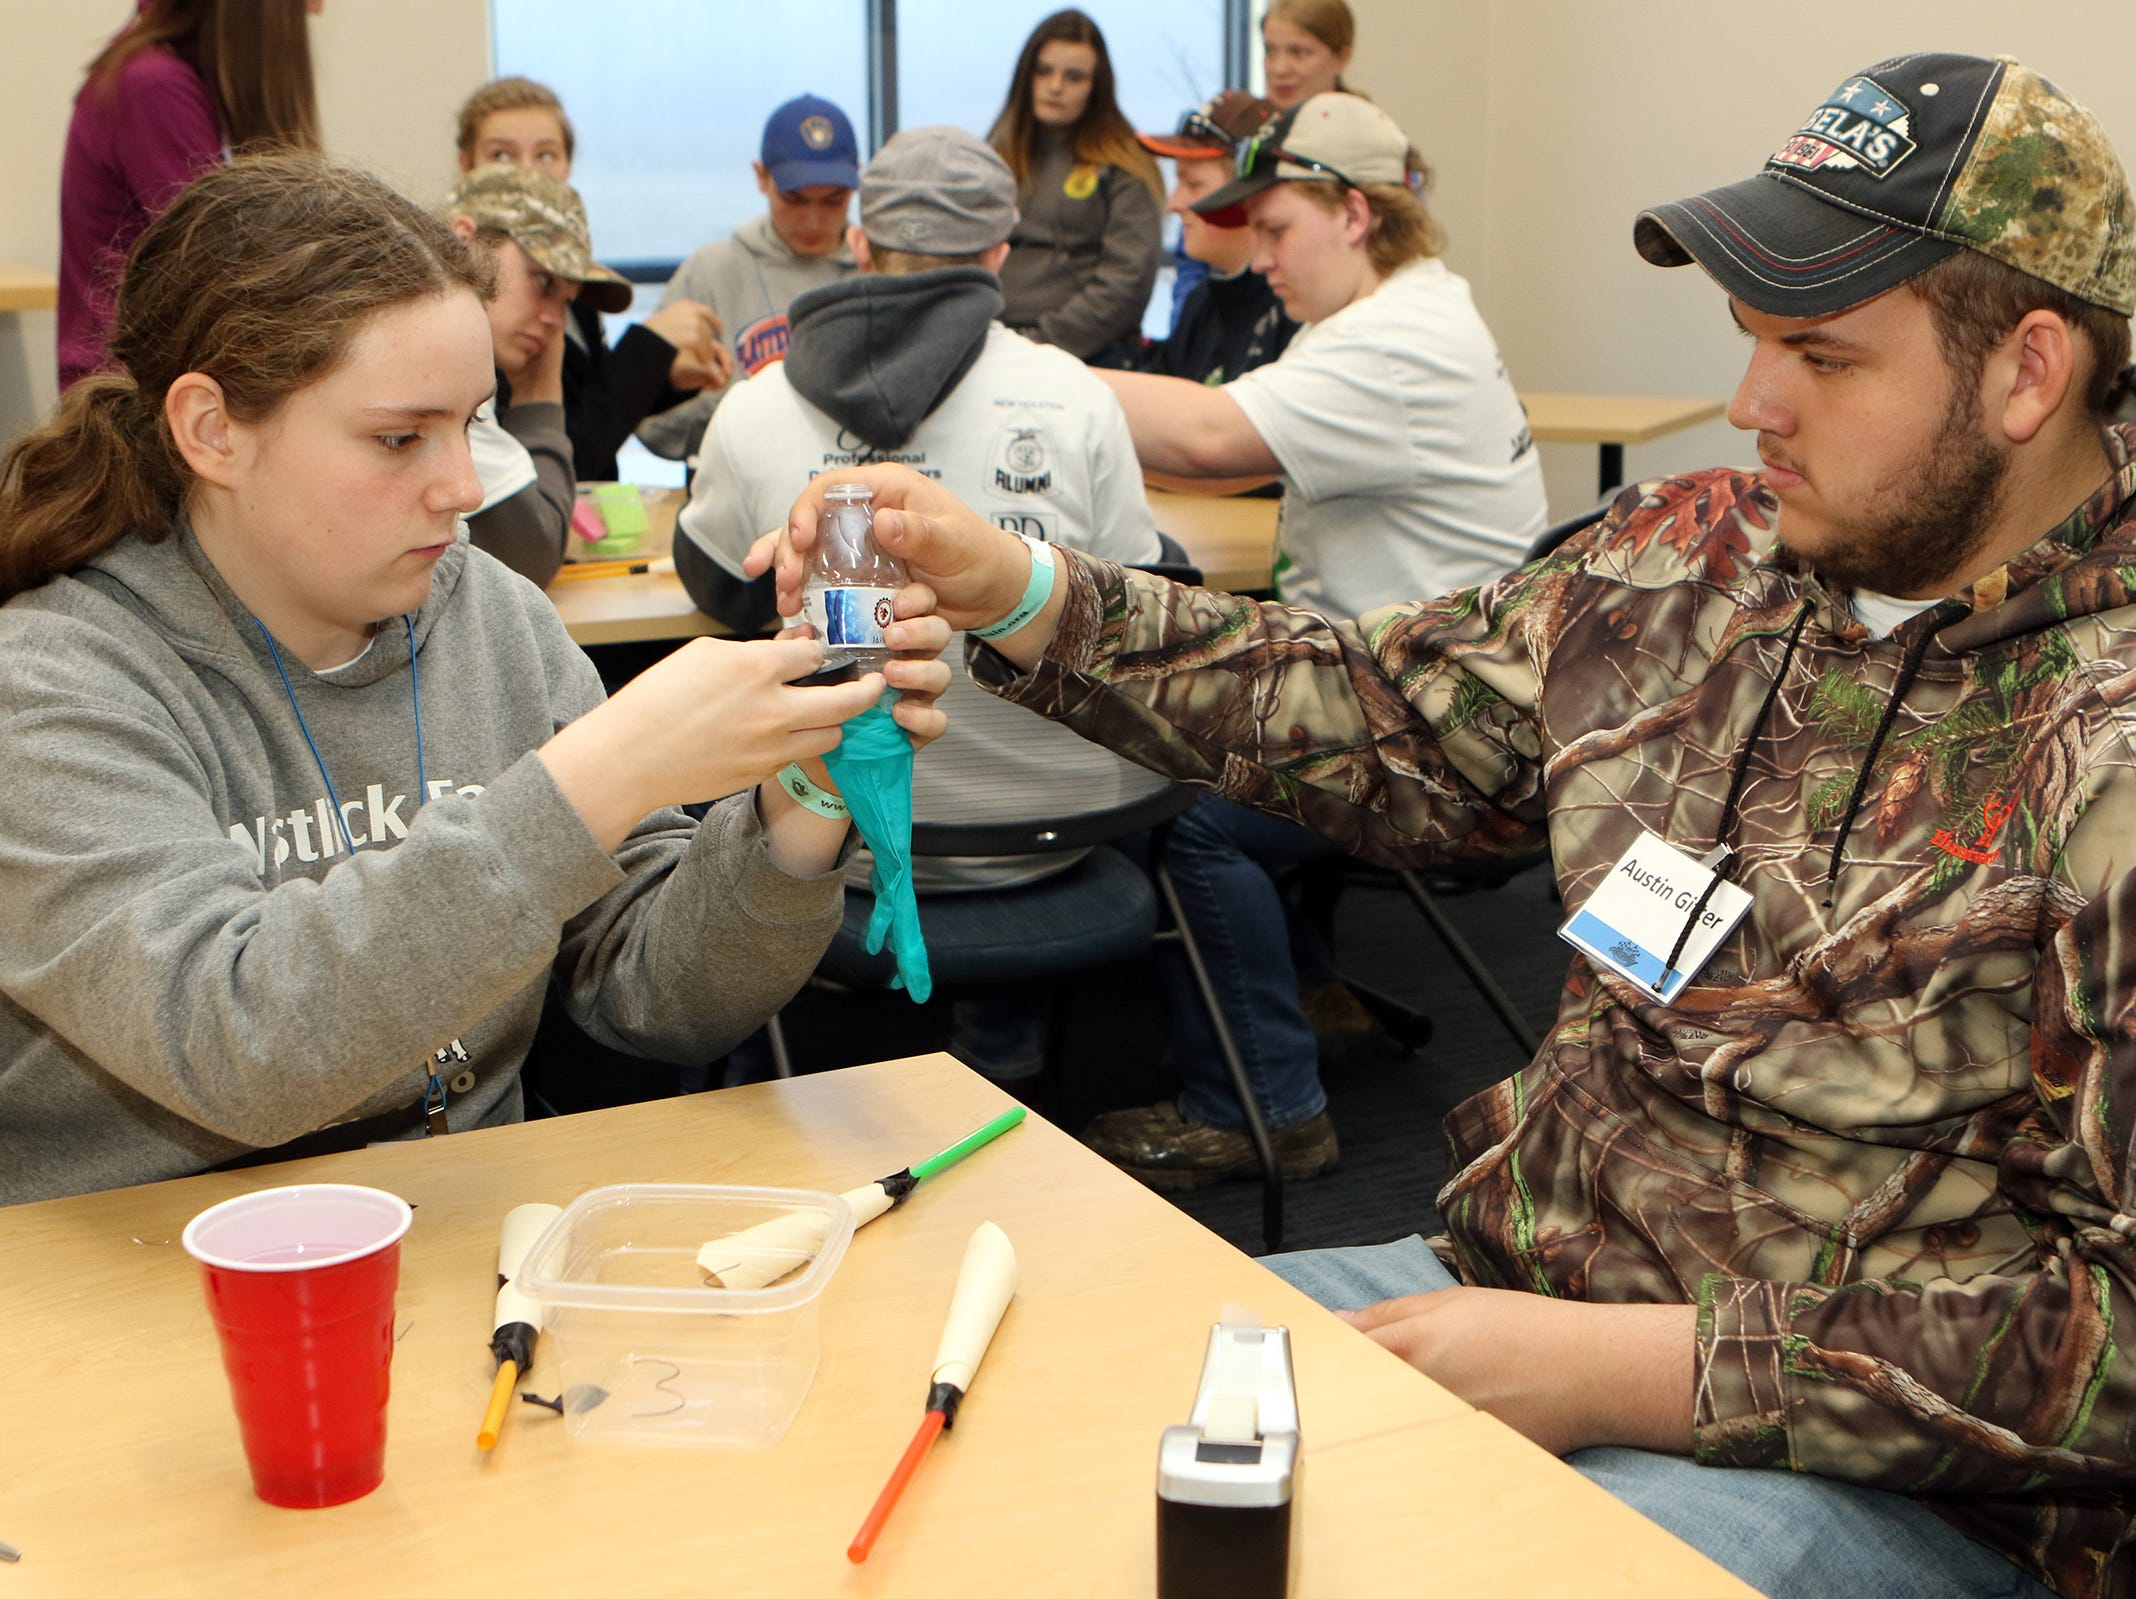 Solena Bodendein, of Wonewoc, and Austin Gitter, of Oakfield, make a model of a cow's quarter as PDPW Youth Leadership Derby participants learn about the cow's mammary system on April 6 at Lakeshore Technical College.